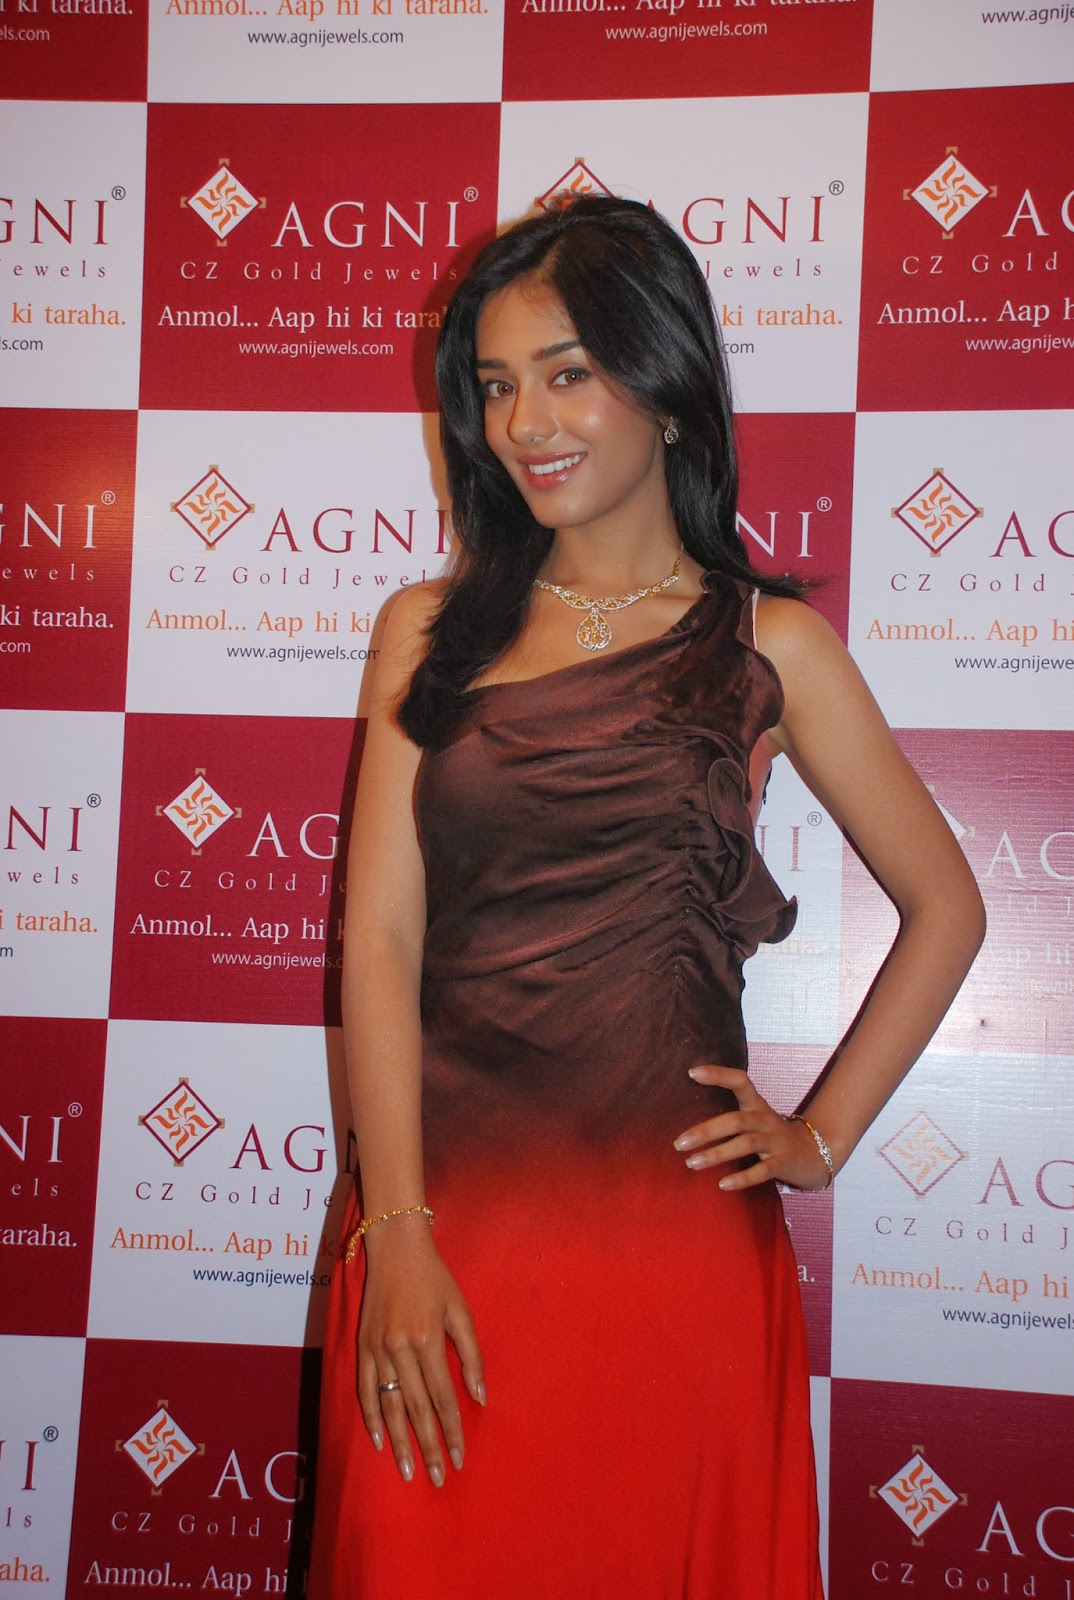 Amrita Rao Hot Stills High Resolution Pictures